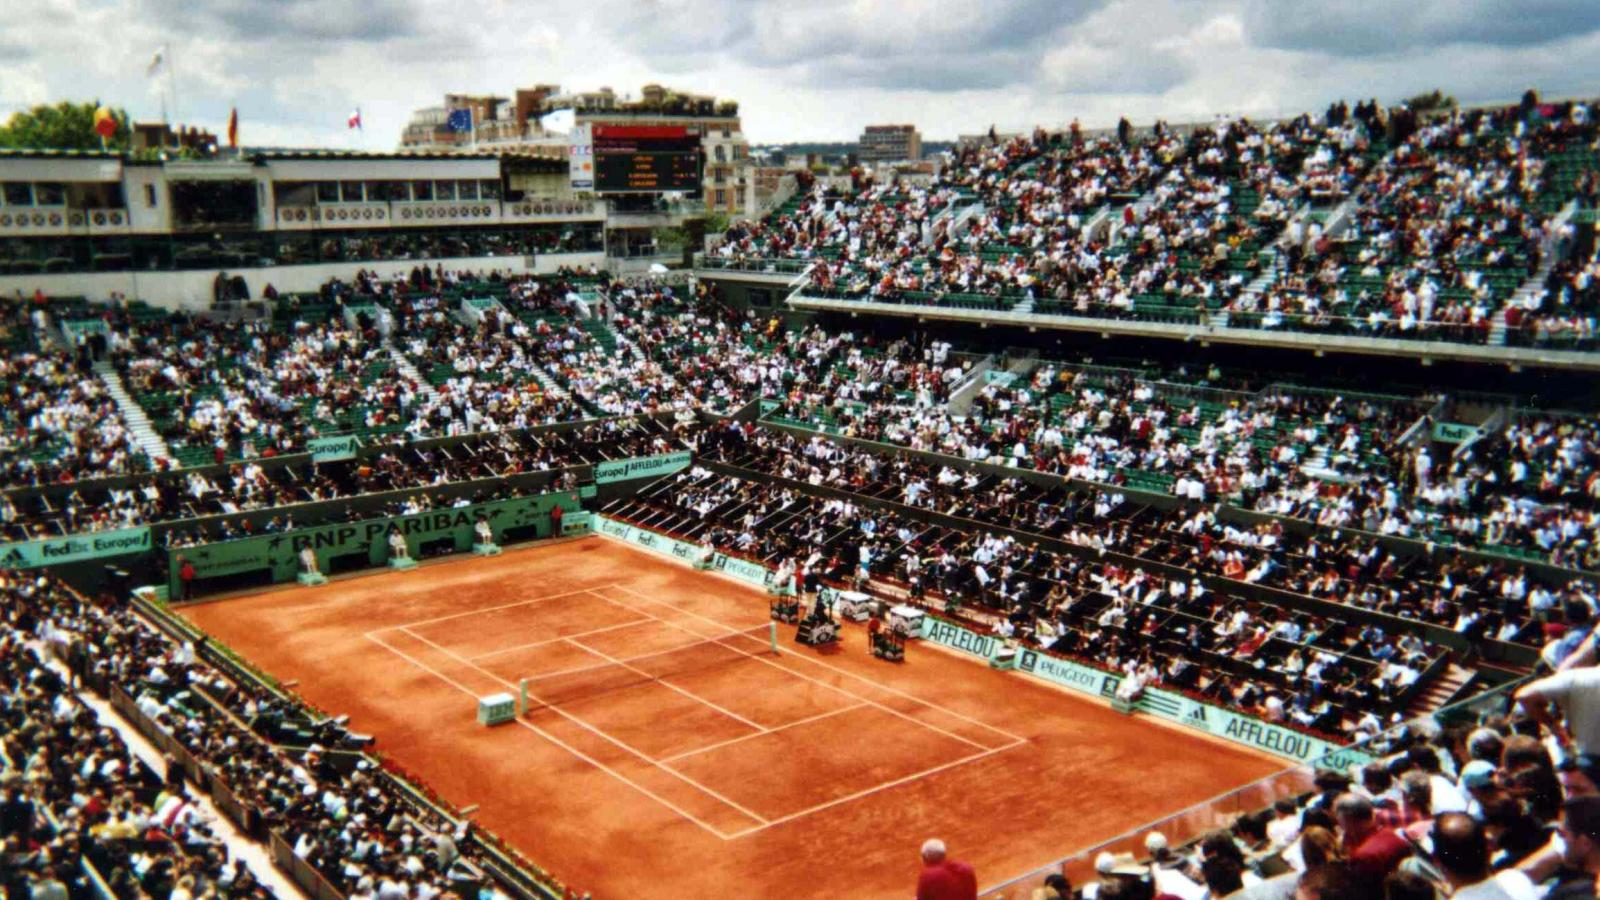 Yellow balls on red clay at the Roland-Garros